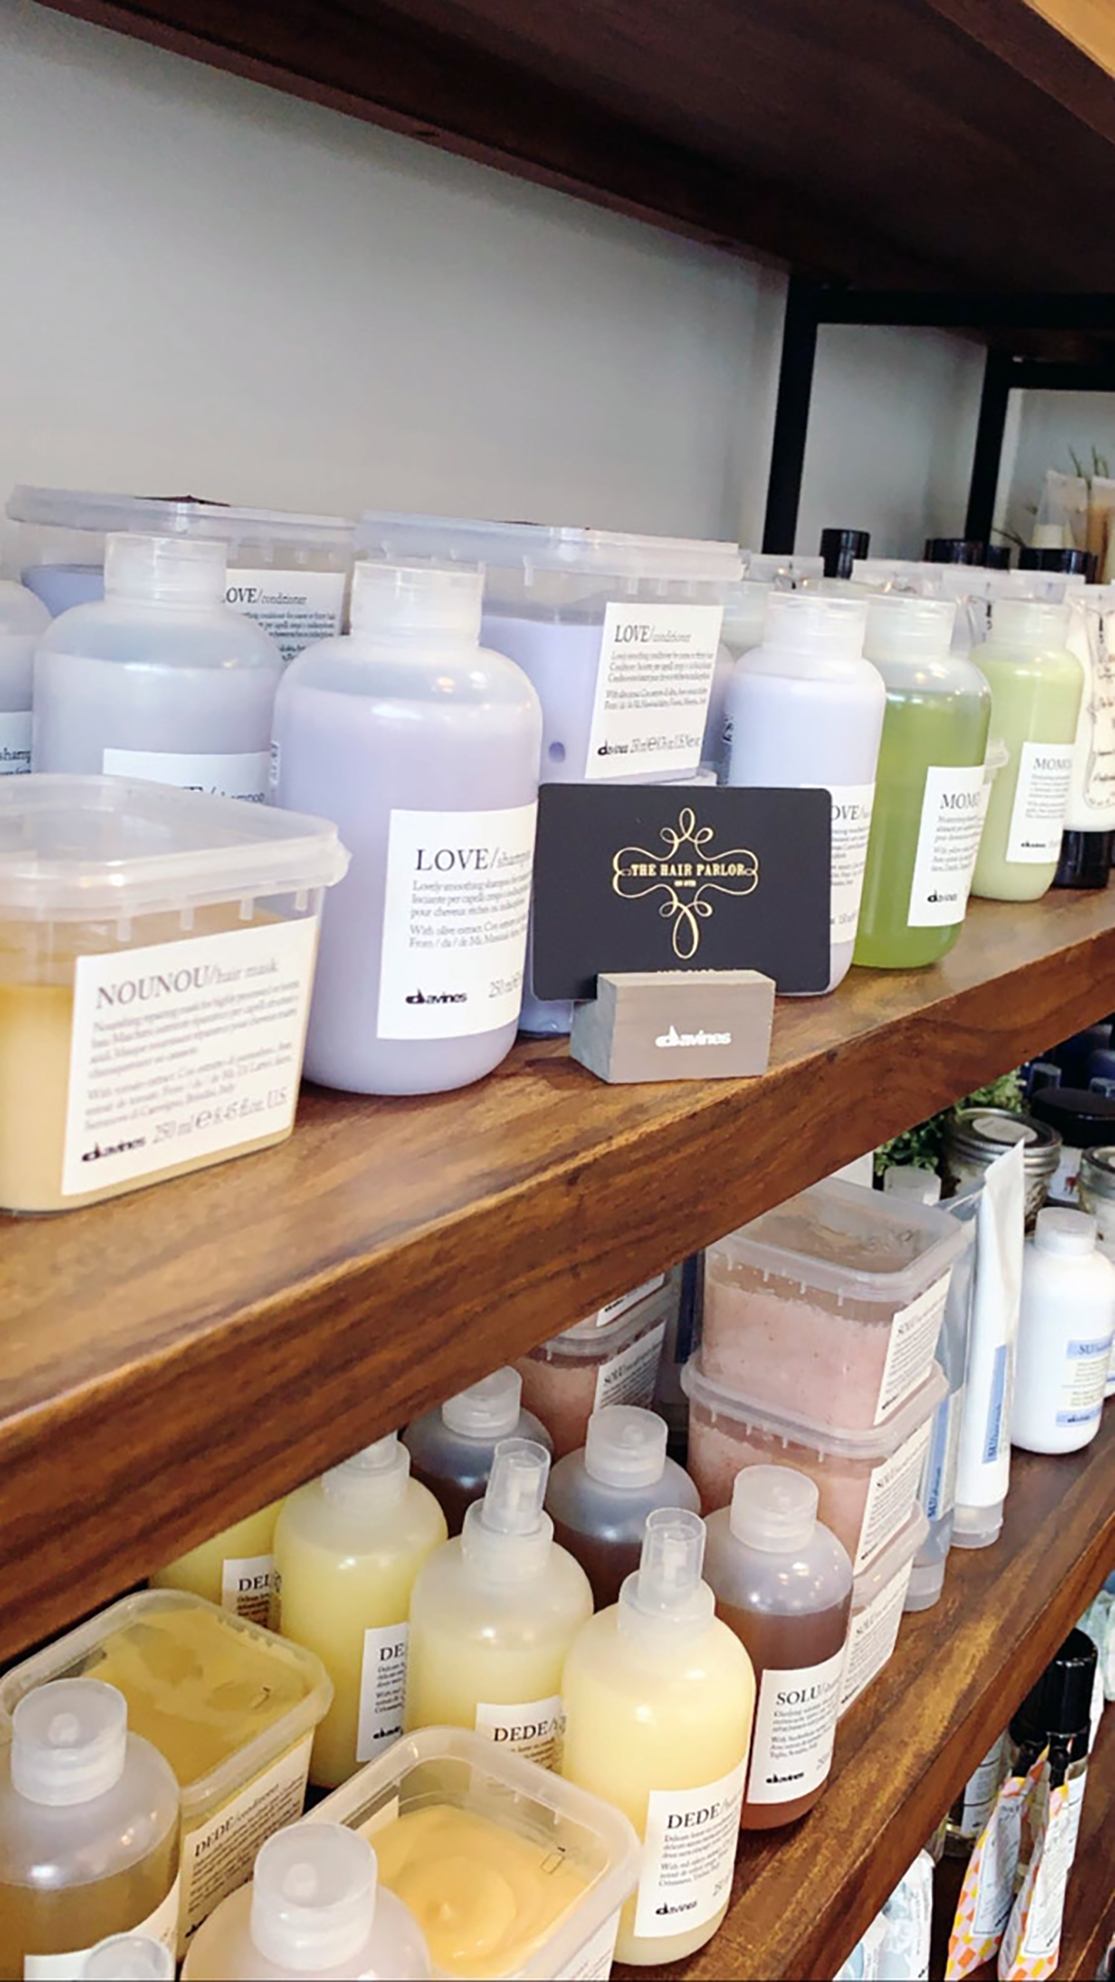 Davines Hair Care lines our shelves. Fully stocked and eco-friendly pacakaging. 100%.